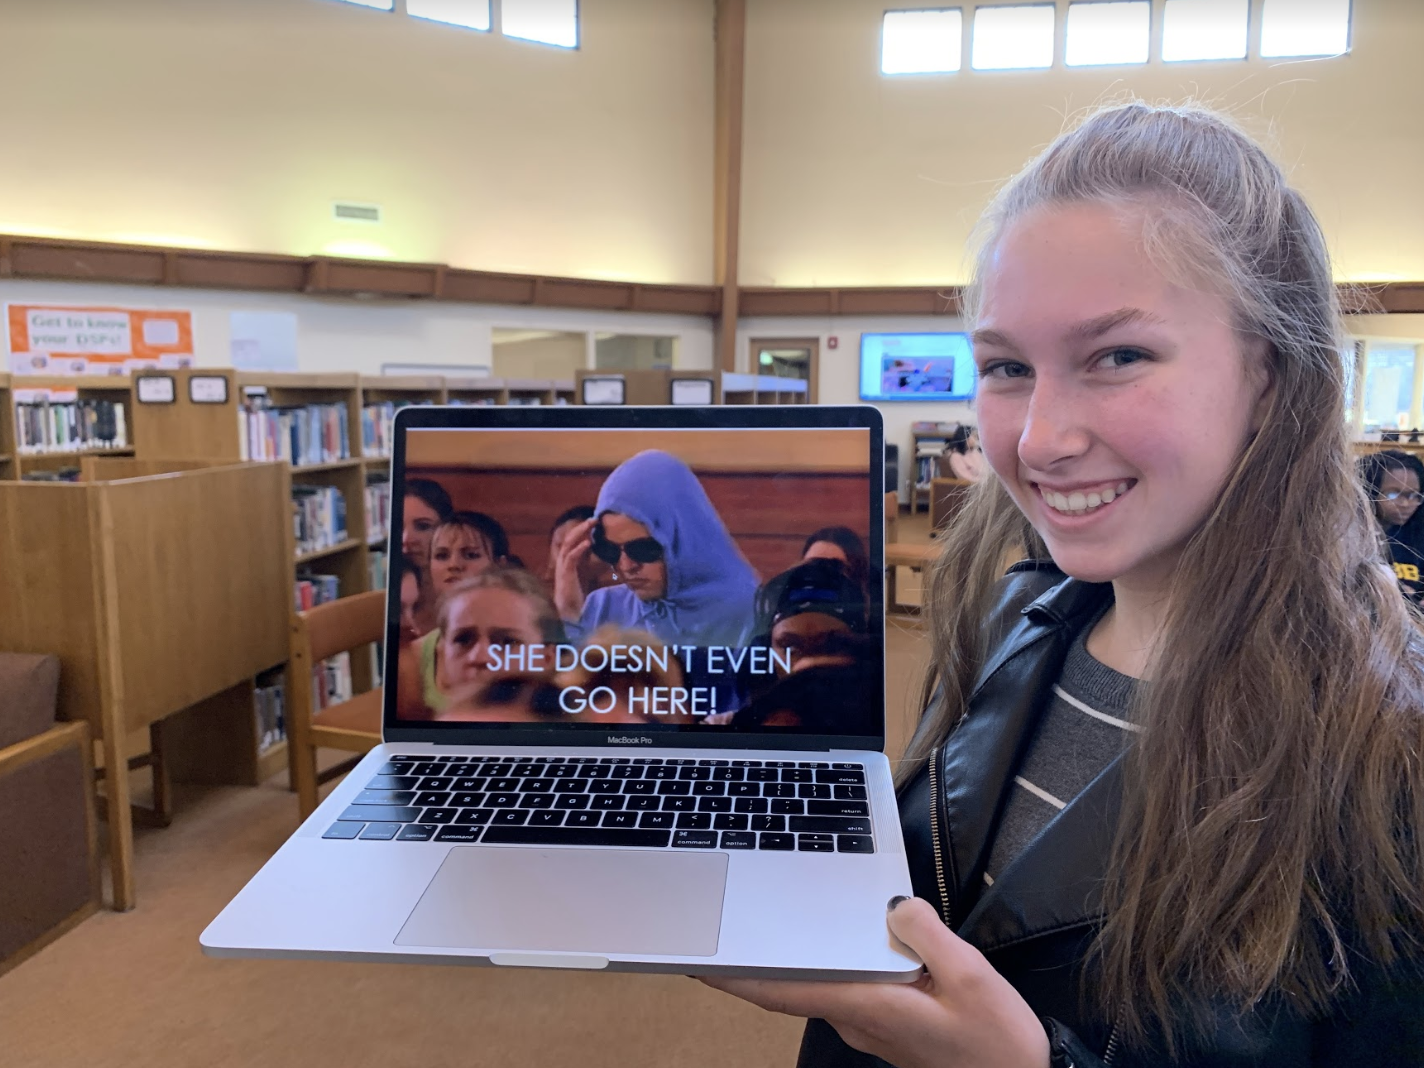 Ashley Cox ('21) poses with the meme she wore on meme day.